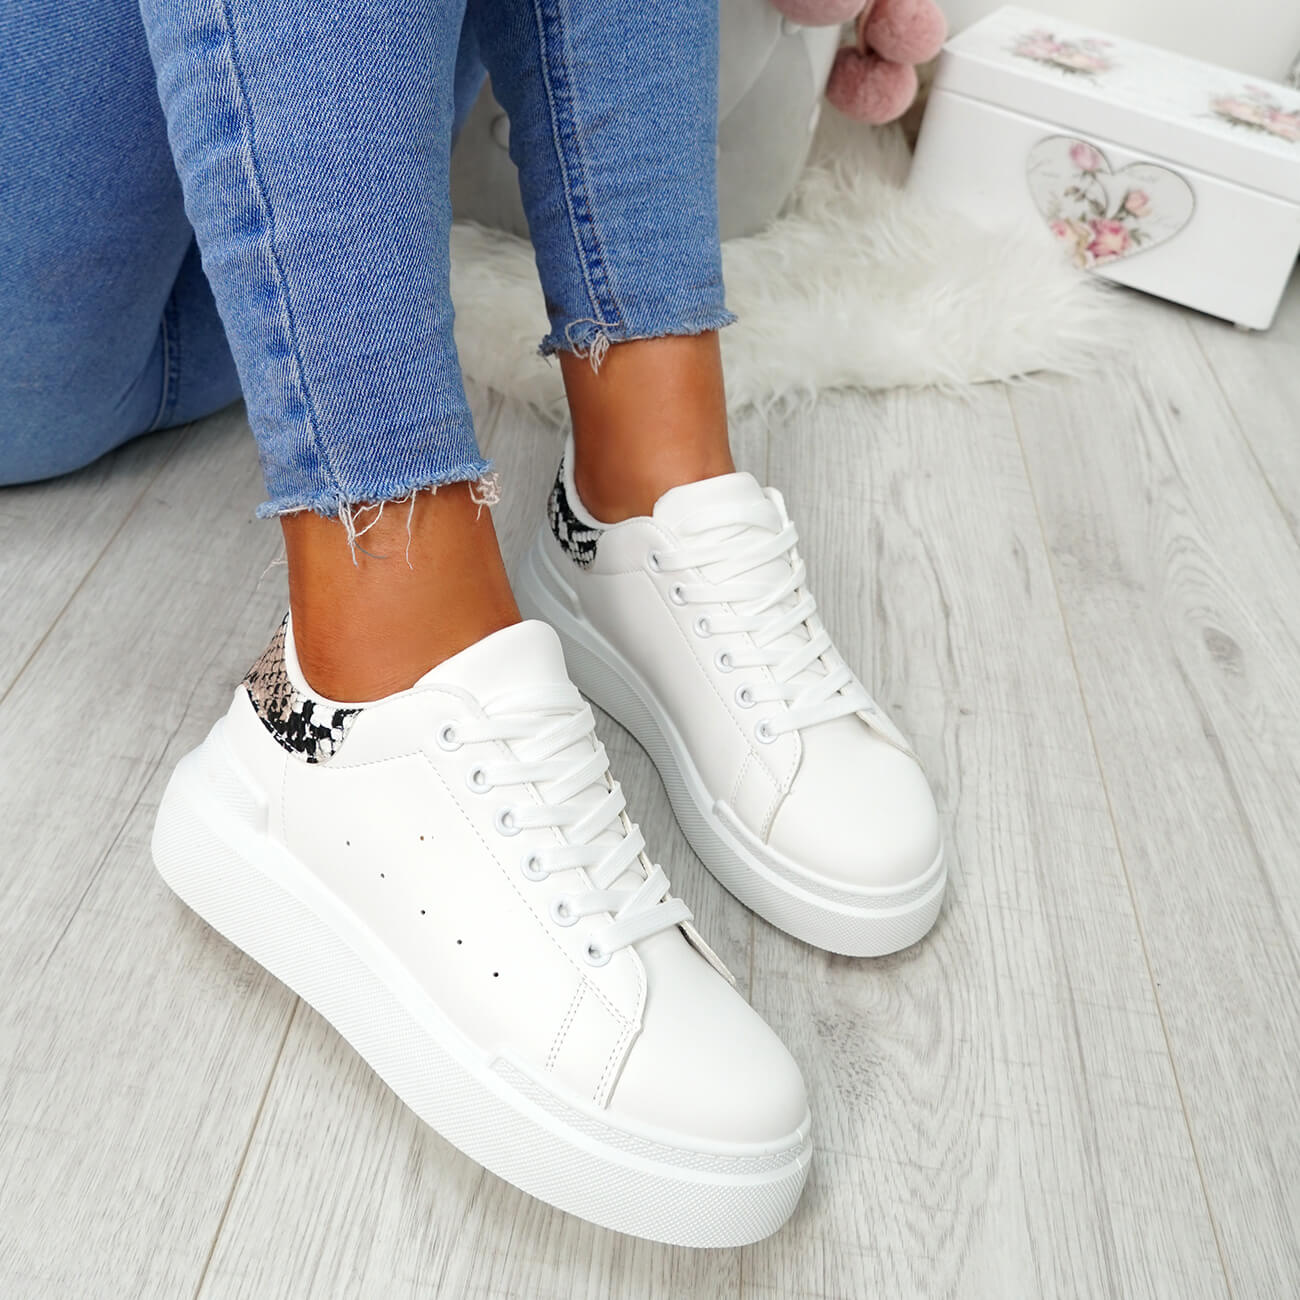 WOMENS-LADIES-LACE-UP-PLIMSOLL-SNEAKERS-CROC-SNAKE-TRAINERS-CASUAL-SHOES-SIZE thumbnail 19